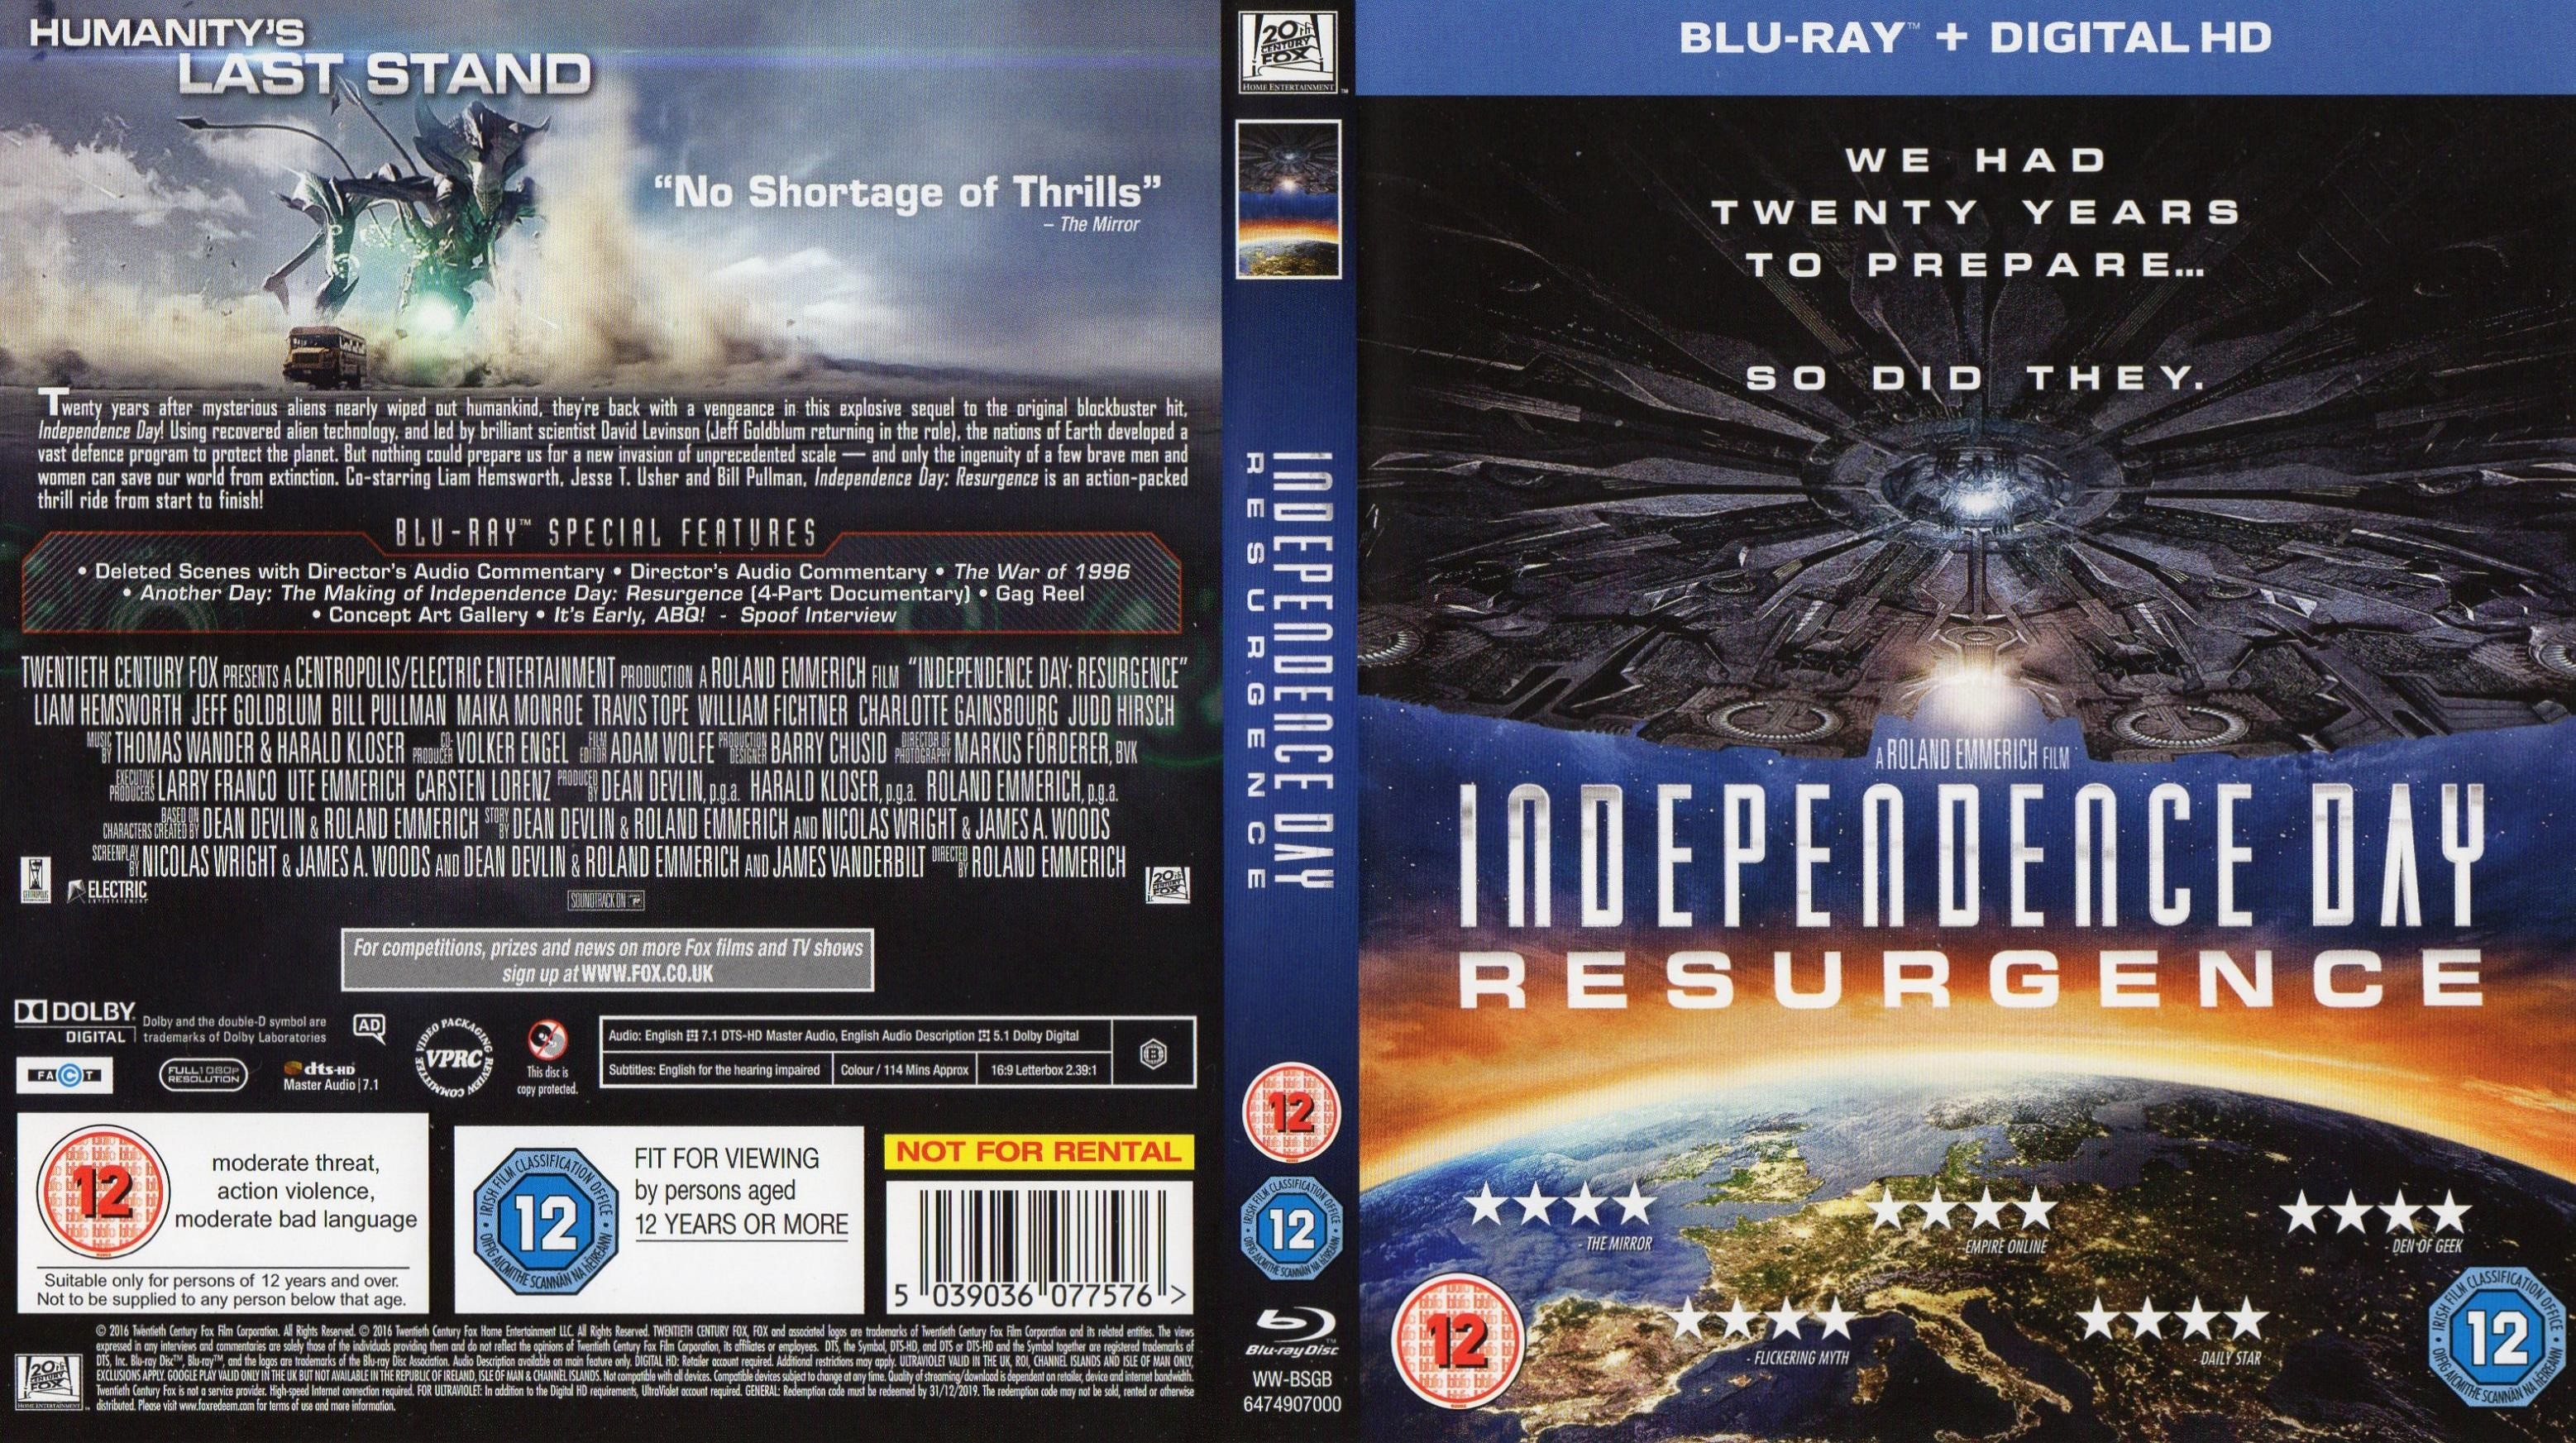 Independence Day Resurgence 2016 R2 Blu Ray Cover Label Dvd Covers And Labels